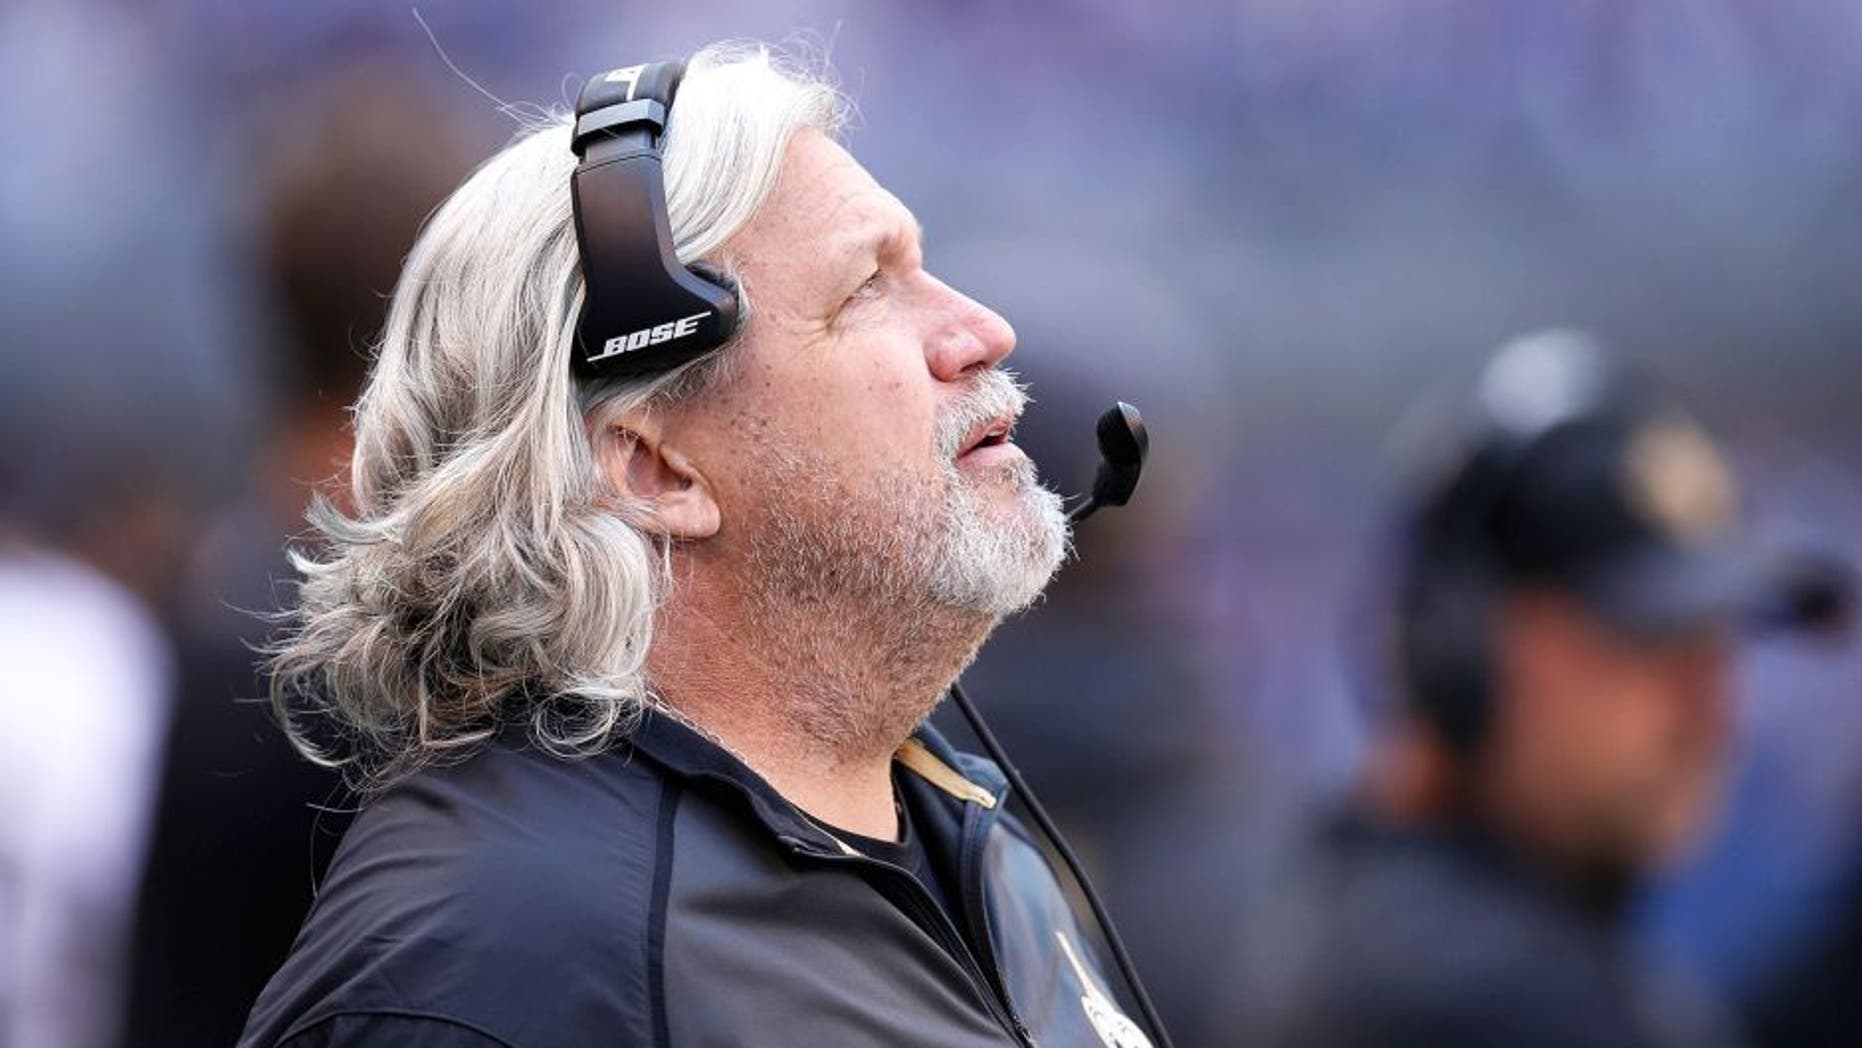 INDIANAPOLIS, IN - OCTOBER 25: Defensive coordinator Rob Ryan of the New Orleans Saints looks on against the Indianapolis Colts during a game at Lucas Oil Stadium on October 25, 2015 in Indianapolis, Indiana. The Saints defeated the Colts 27-21. (Photo by Joe Robbins/Getty Images)